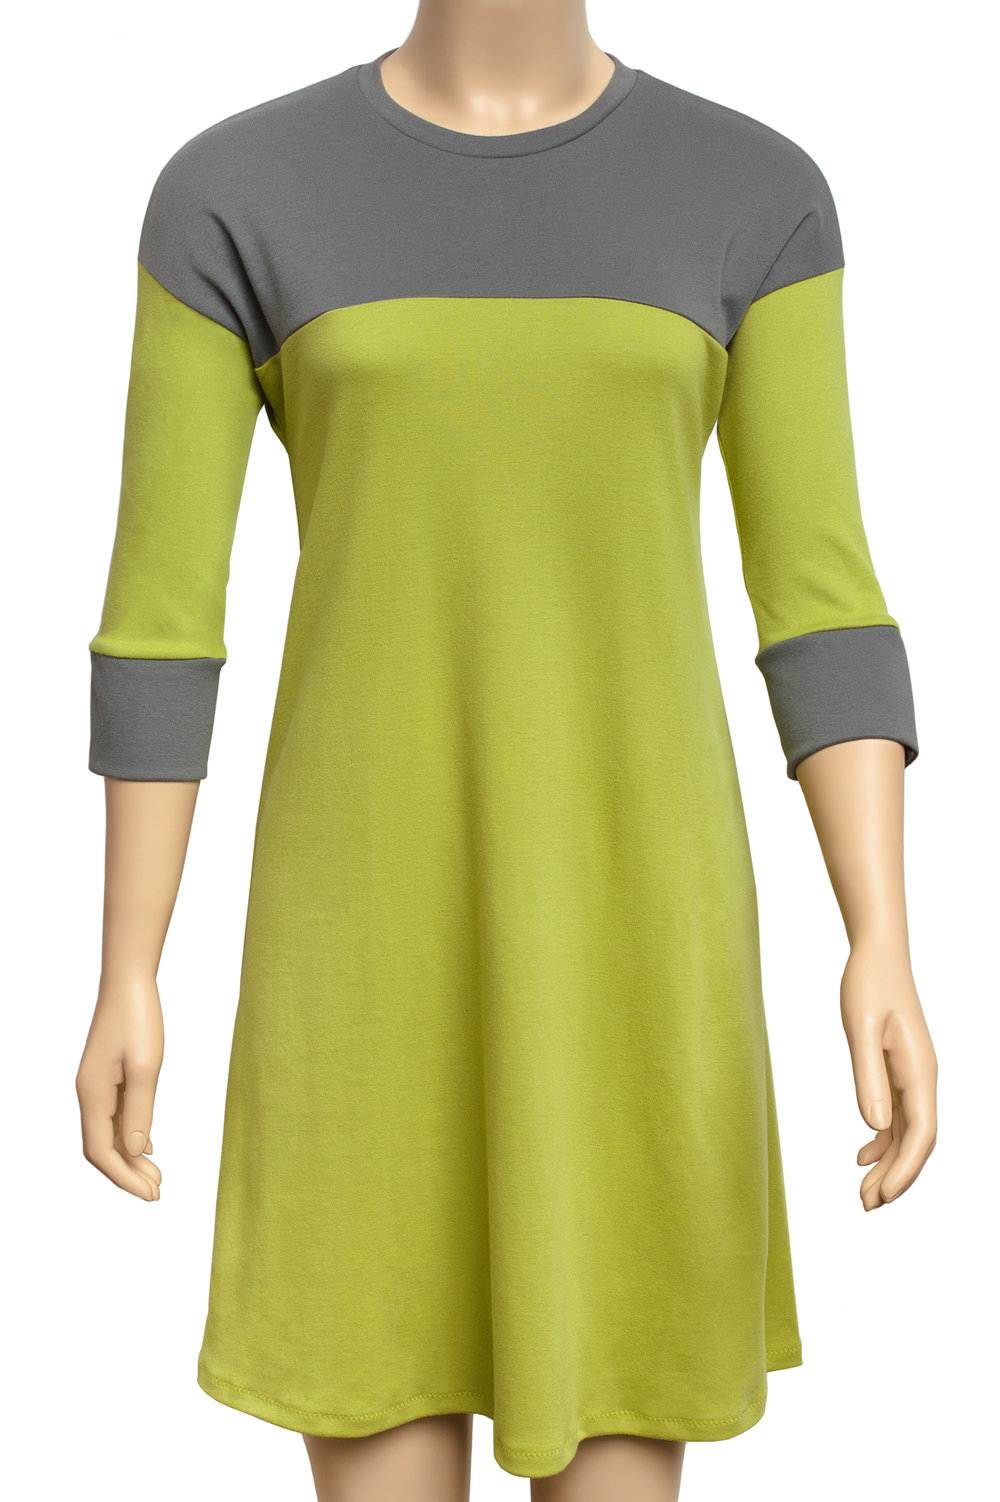 Marianne Dress   designed by   Christine Haynes  , made by Christine Haynes, featuring   Catalina Knit